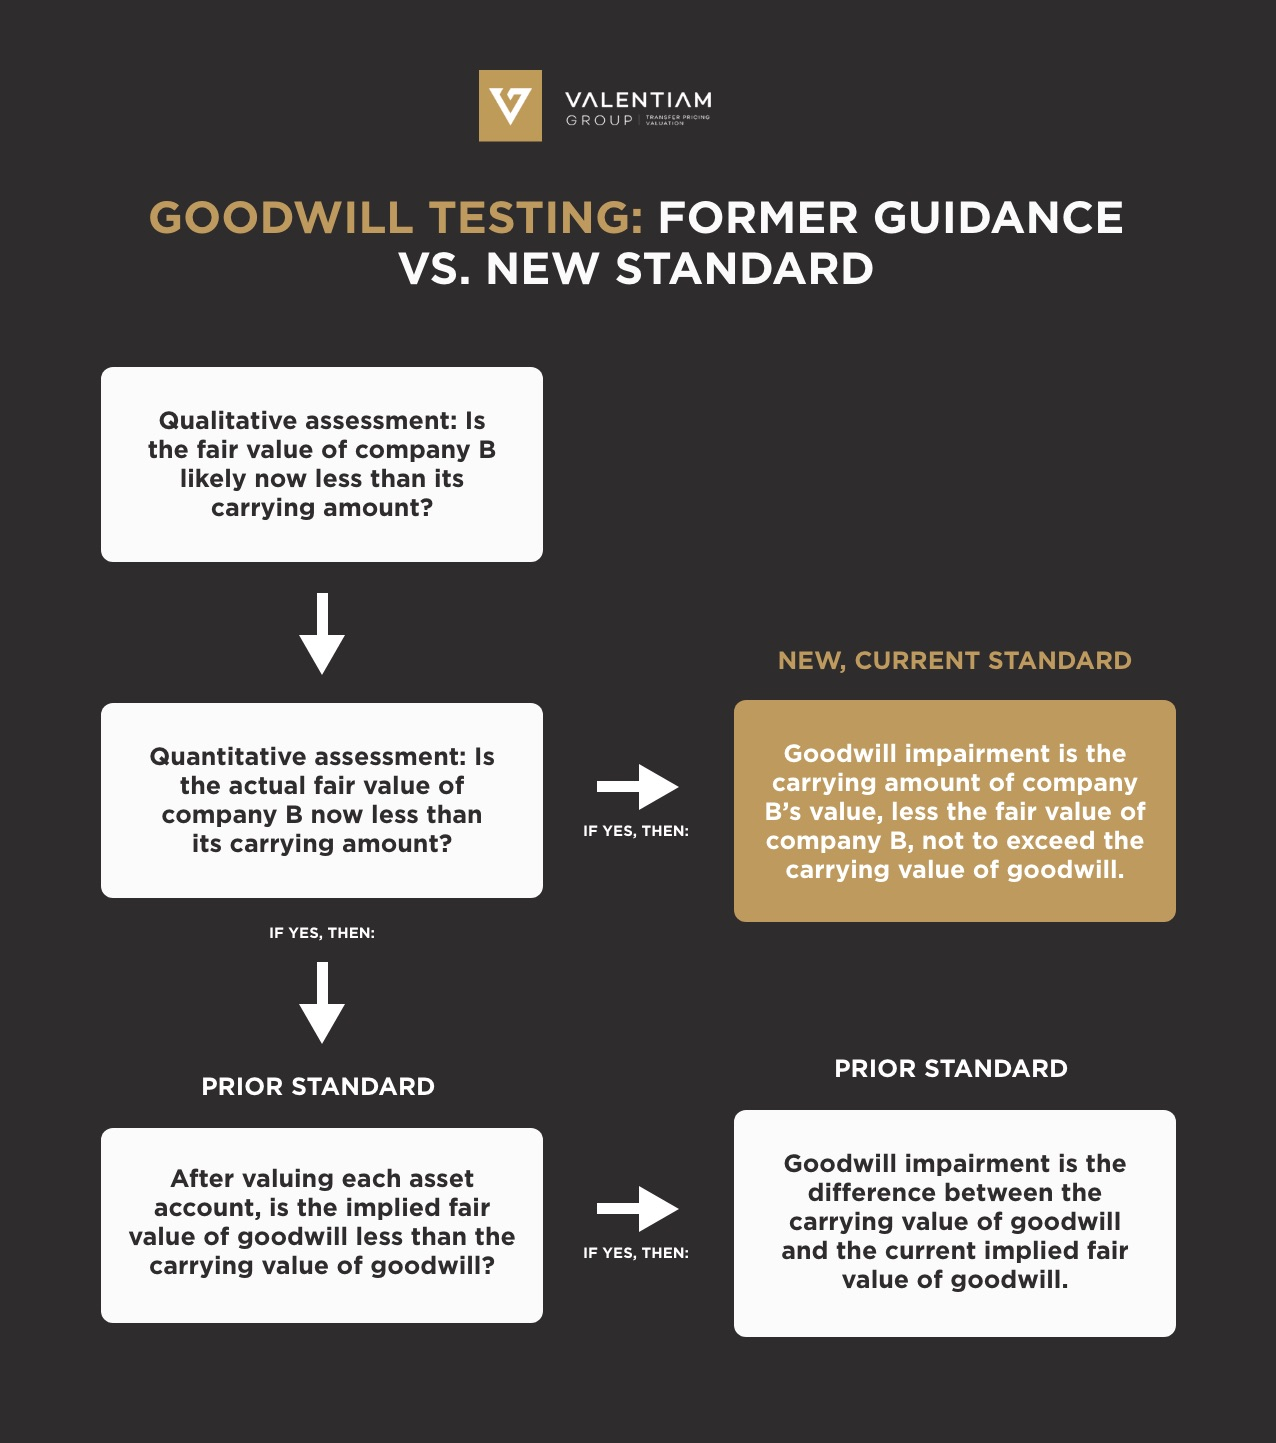 Goodwill testing: former guidance vs. new standard